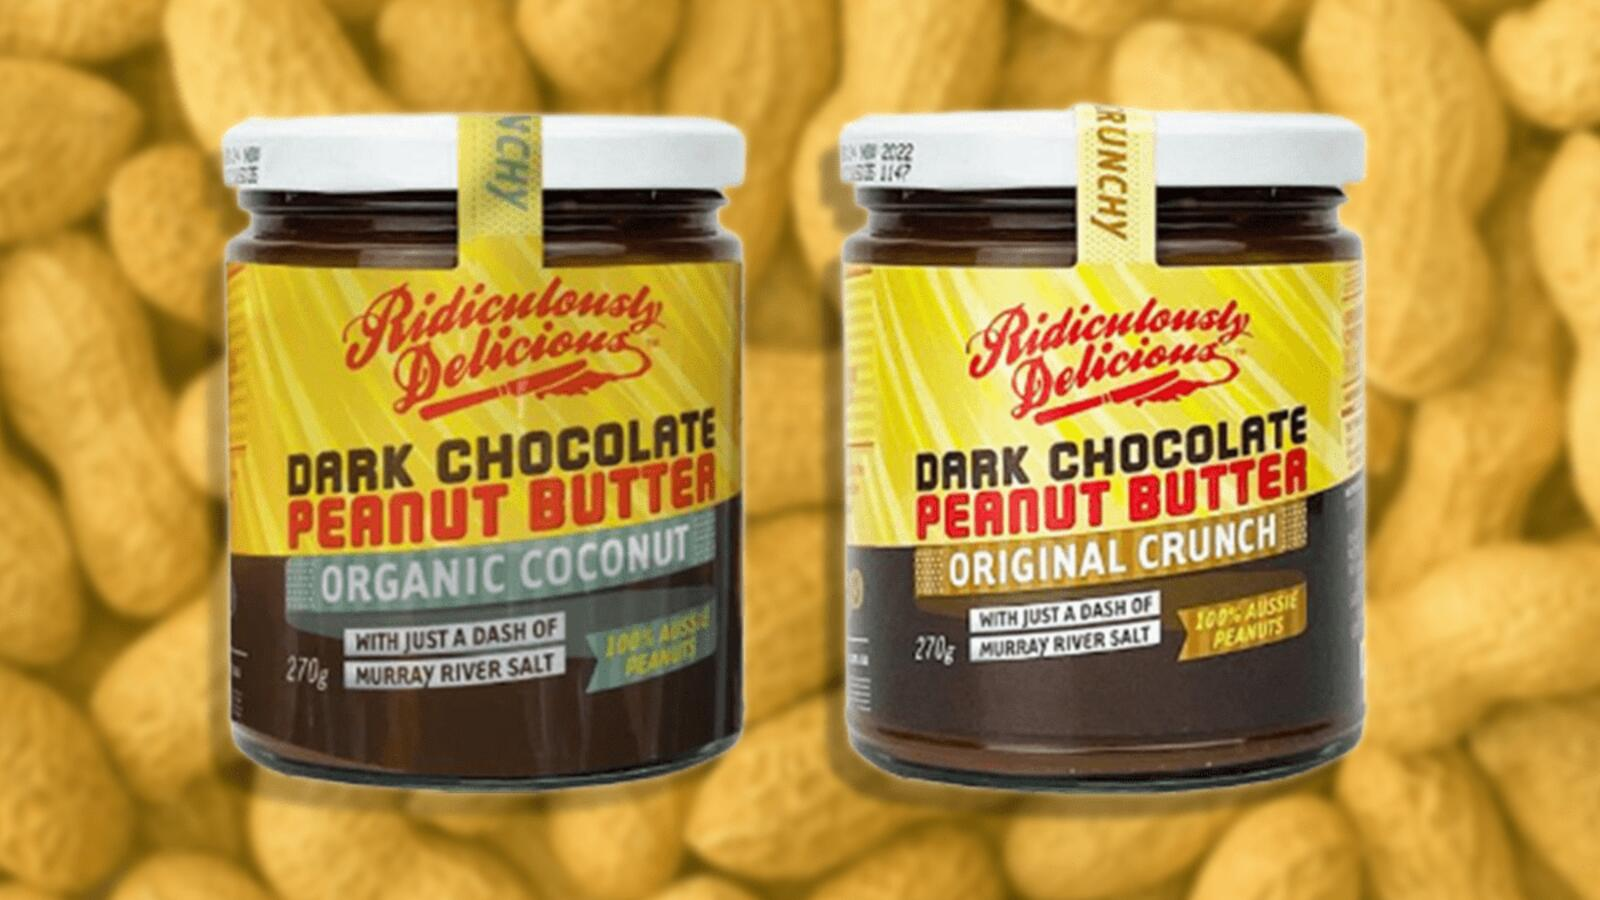 Aussie Brand 'Ridiculously Delicious' Have Dropped Dark Chocolate Peanut...